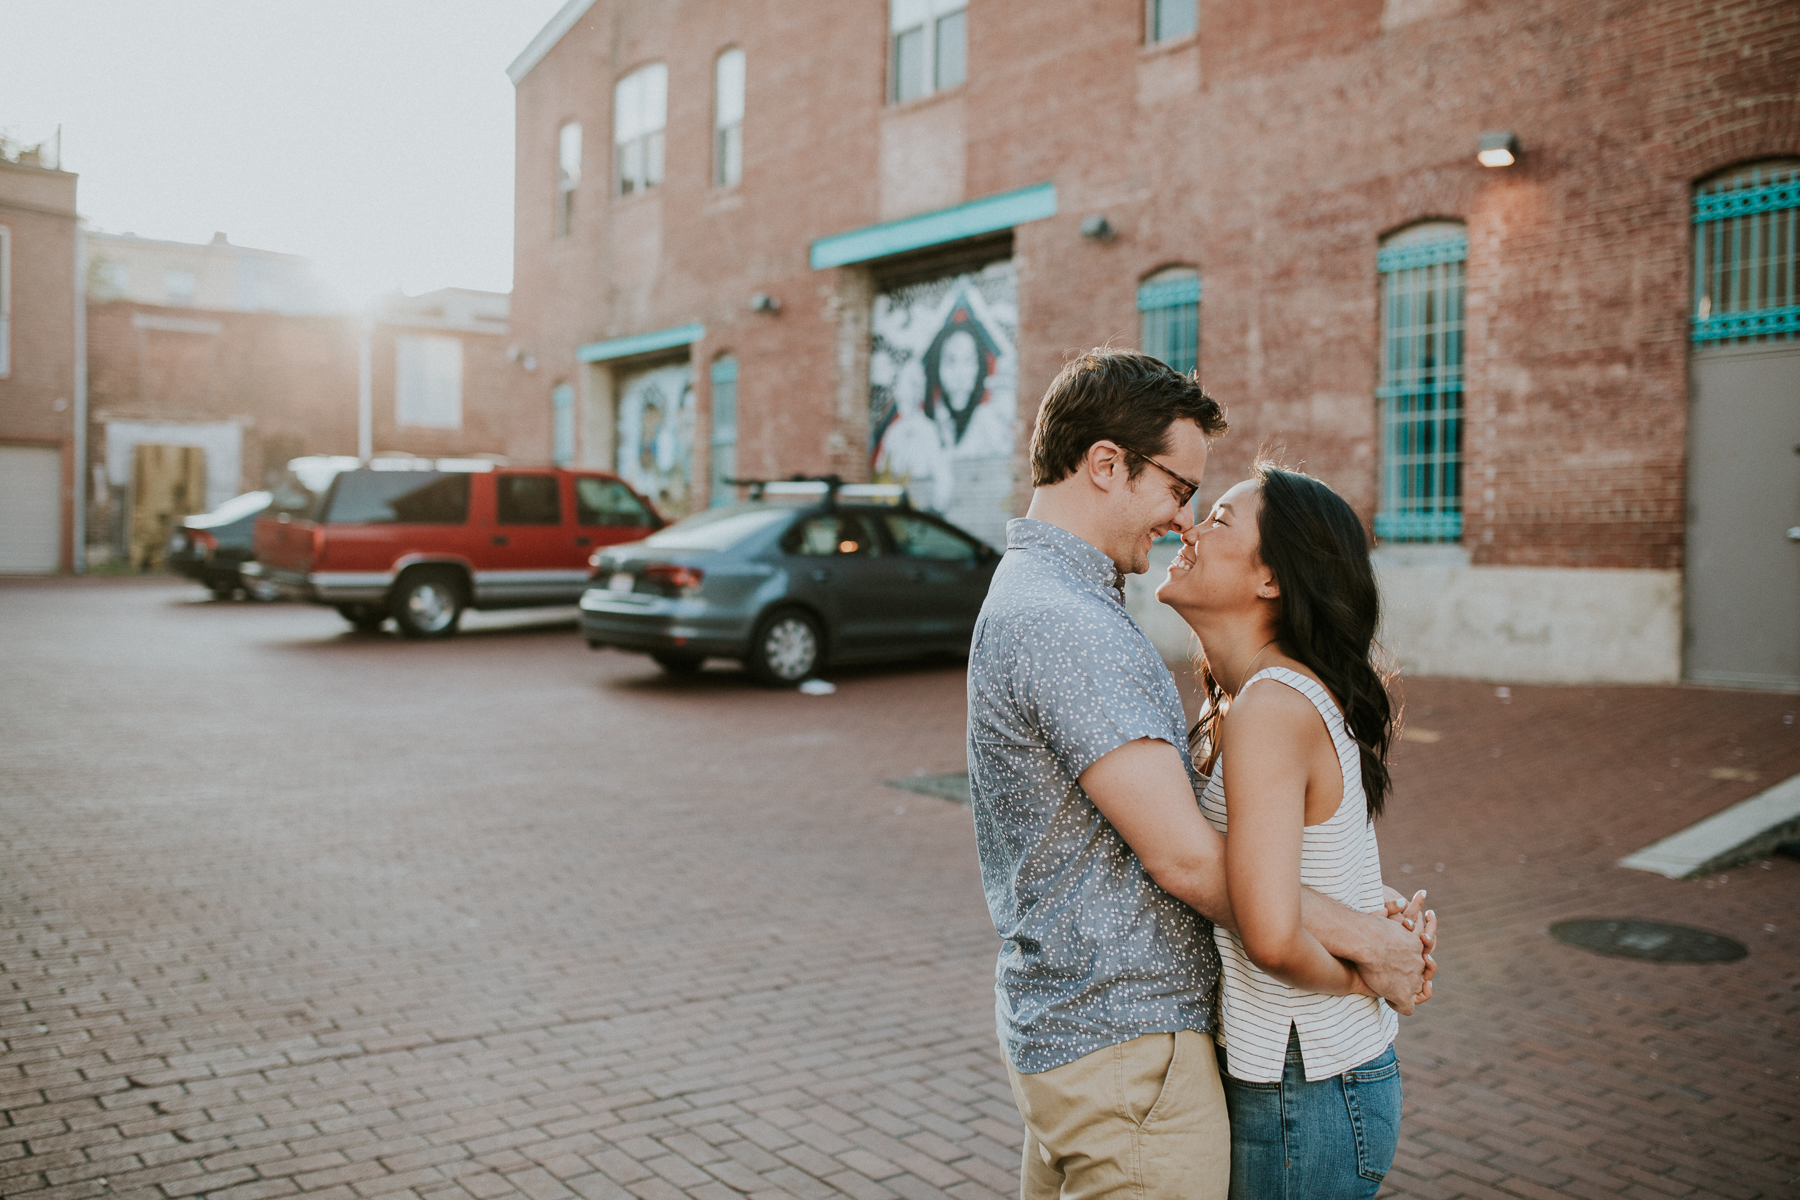 washington-dc-blagden-alley-engagement-photographer-1-4.jpg